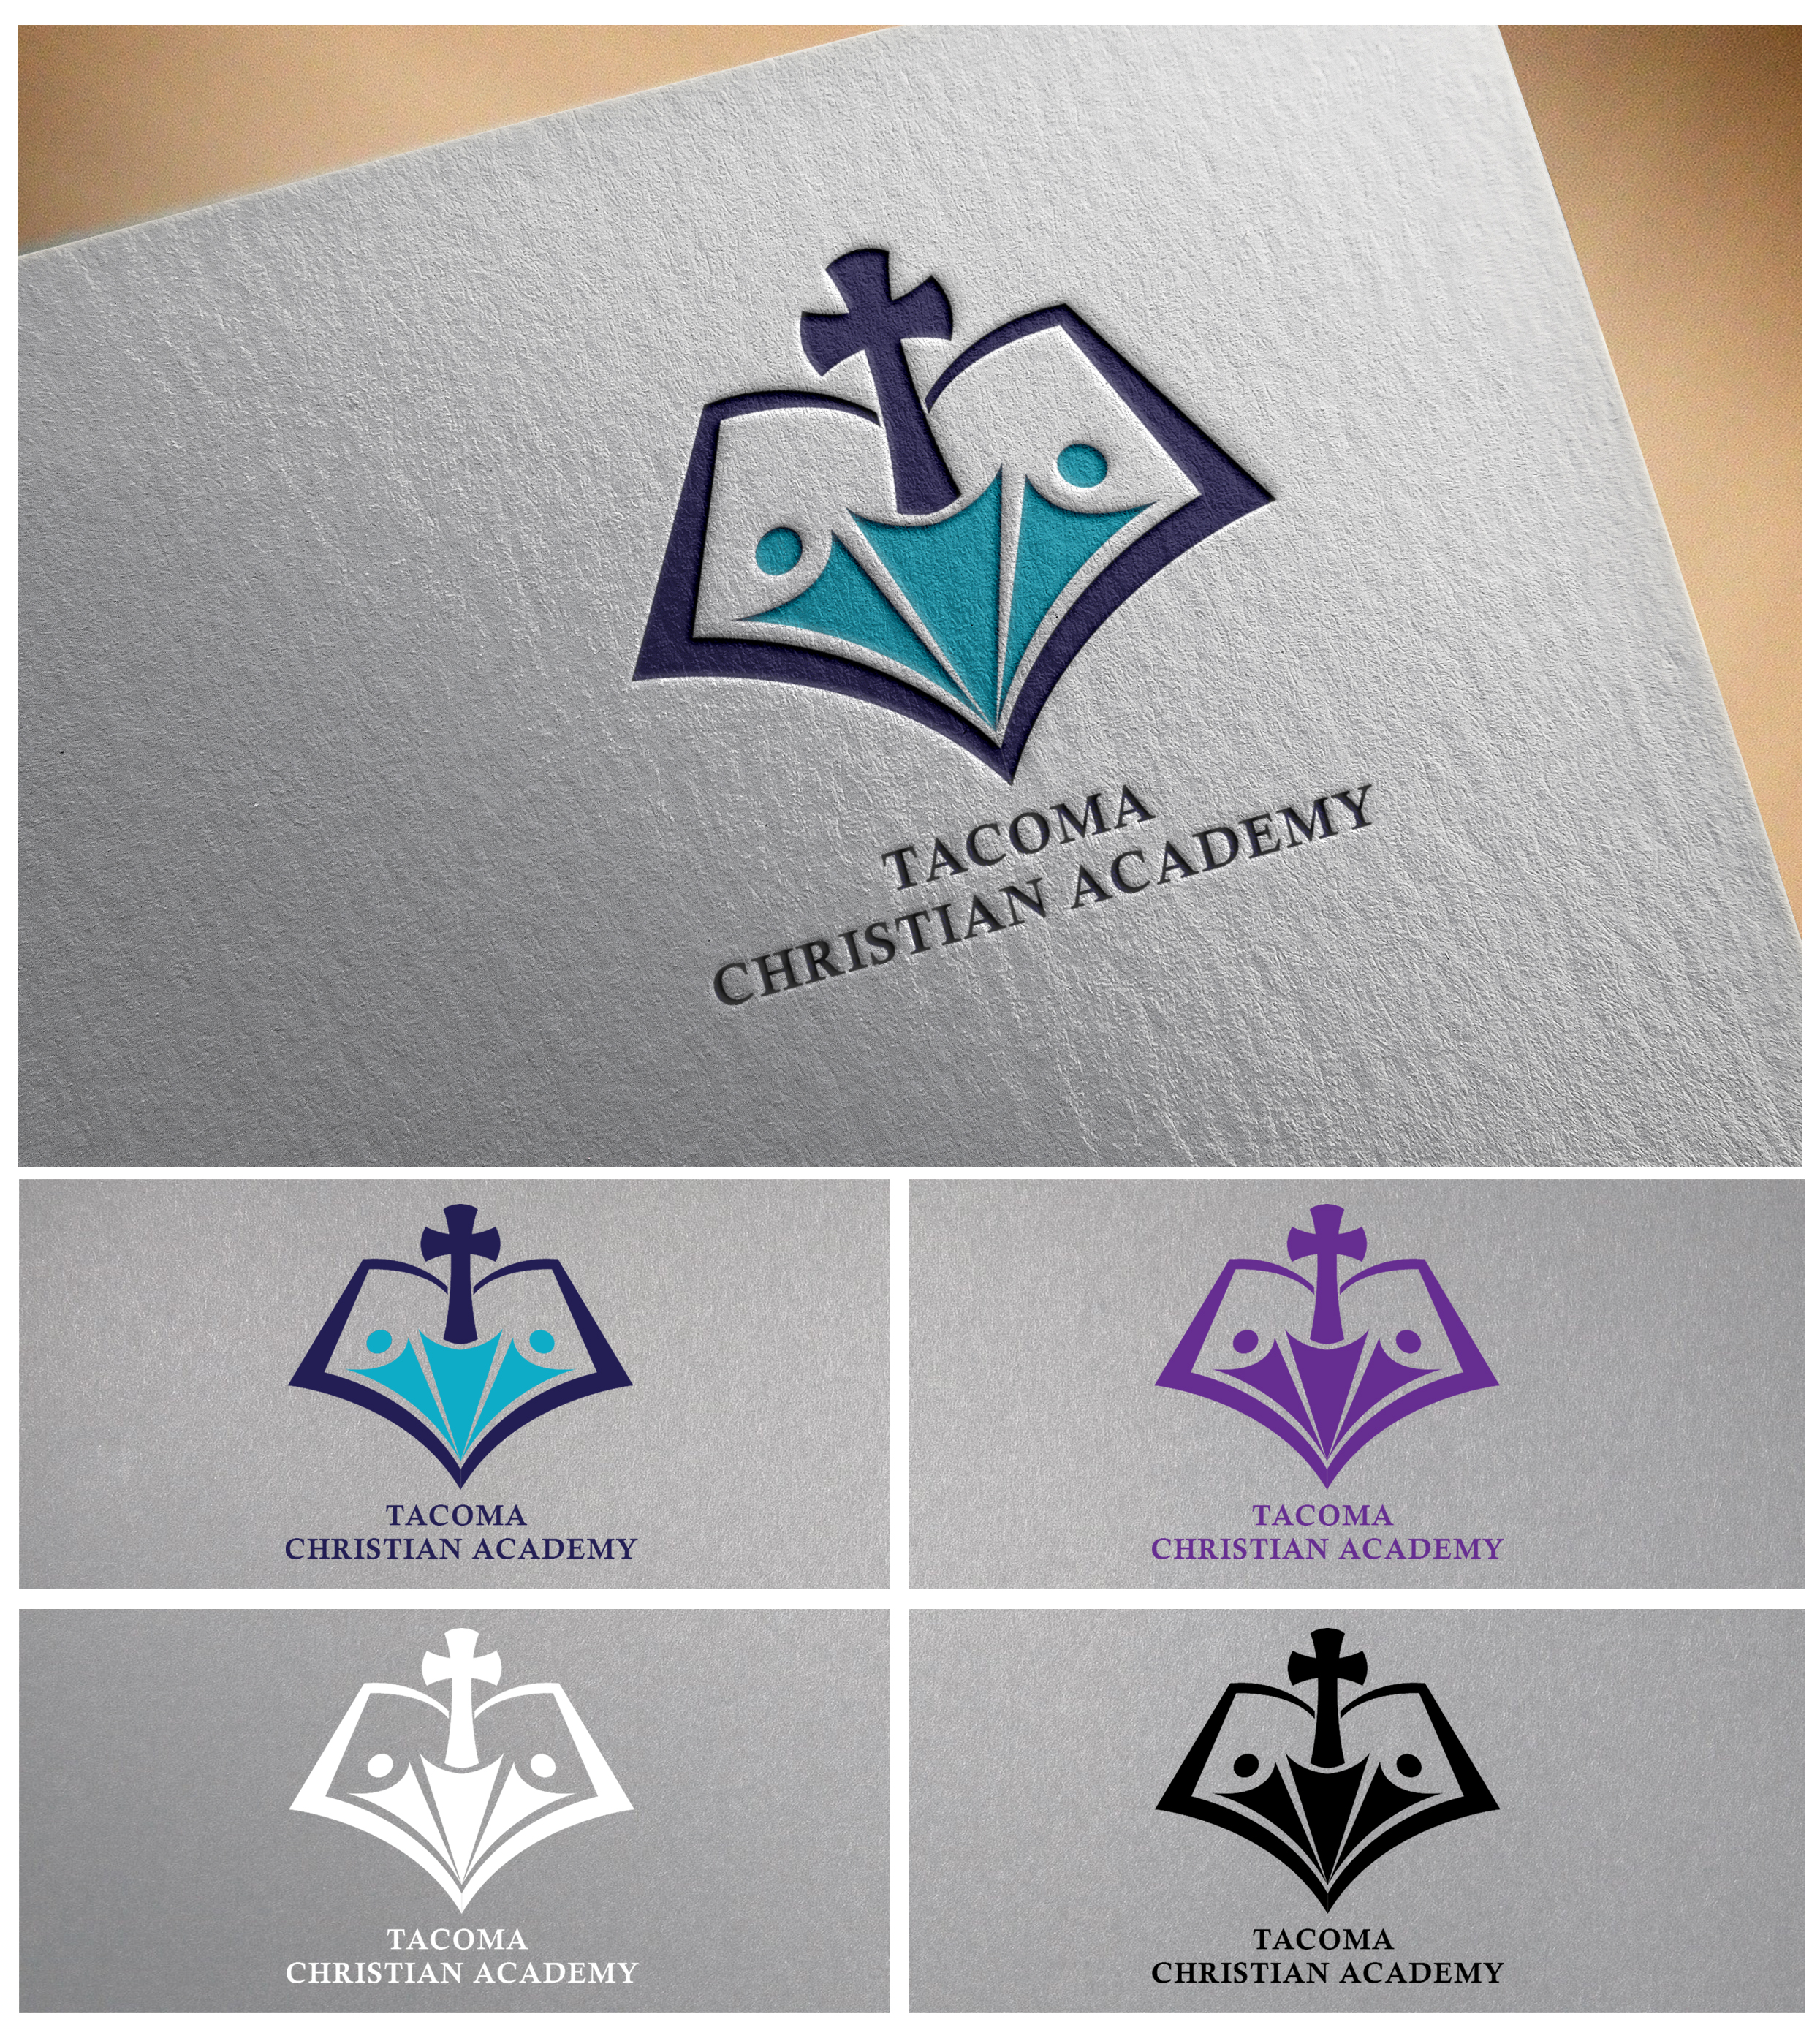 Logo Design by Joy Bhowmik - Entry No. 112 in the Logo Design Contest Imaginative Logo Design for Tacoma Christian Academy.